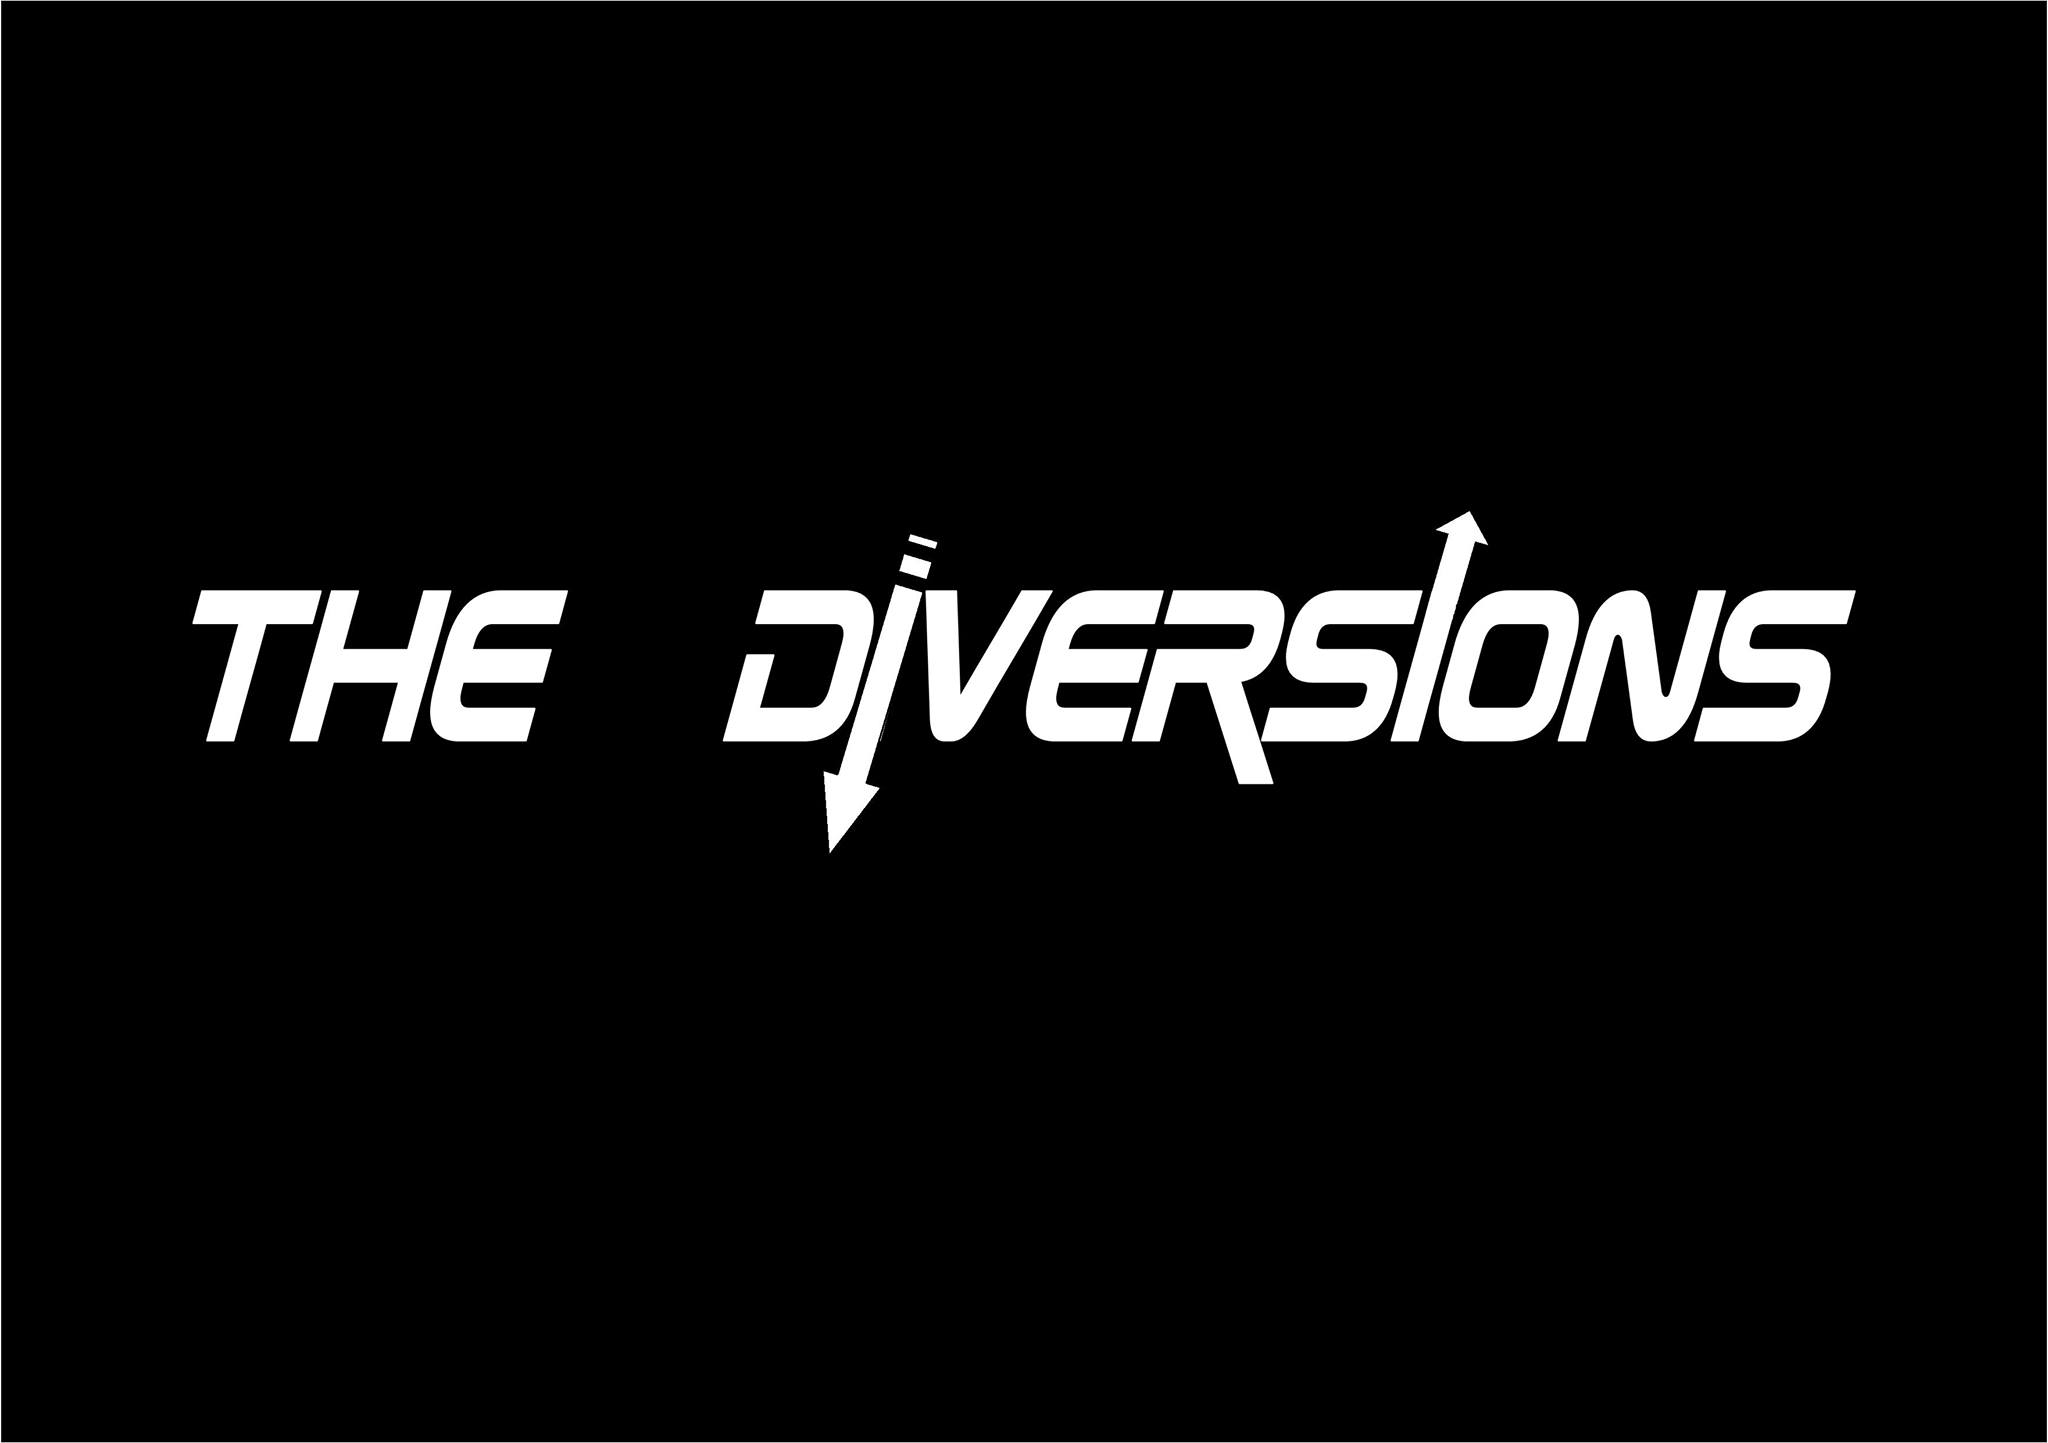 THE DIVERSIONS, ALMA FIERA, SAFE HOUSE, GED HANLEY TRIO